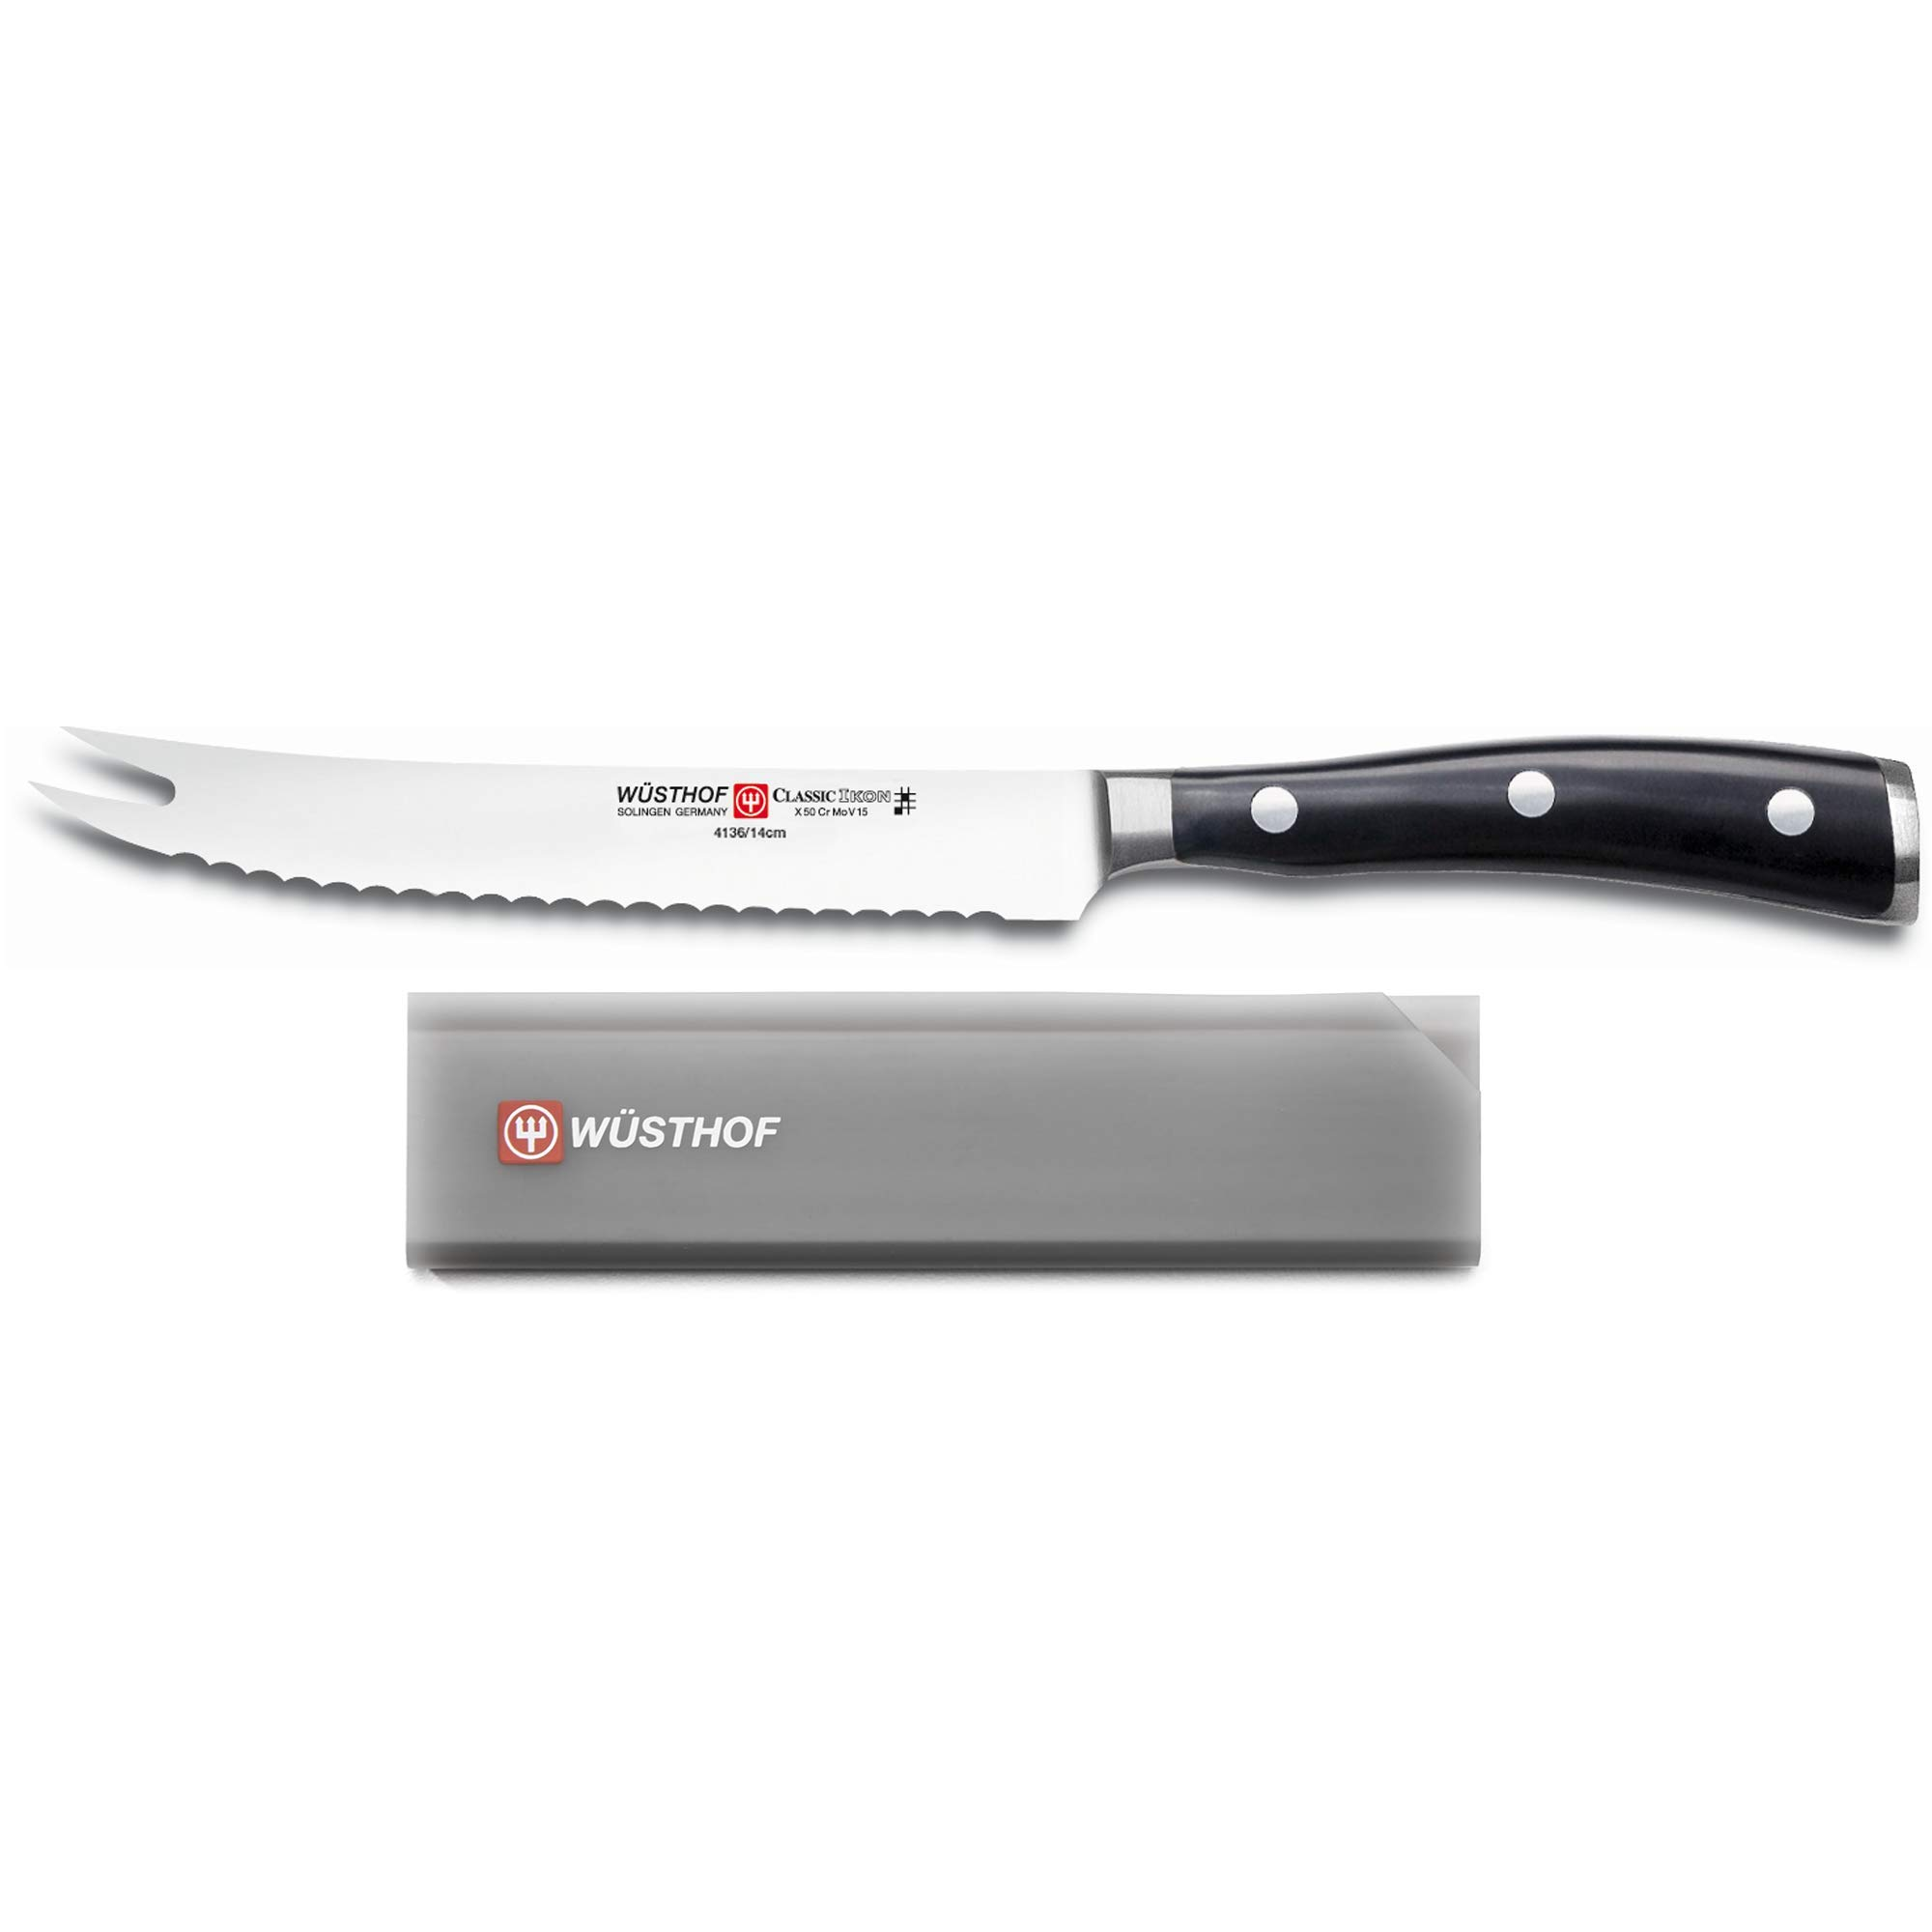 Wusthof Classic Ikon 5'' Tomato Knife with Blade Guard Fits Up To 5'' Paring/Utility Knife